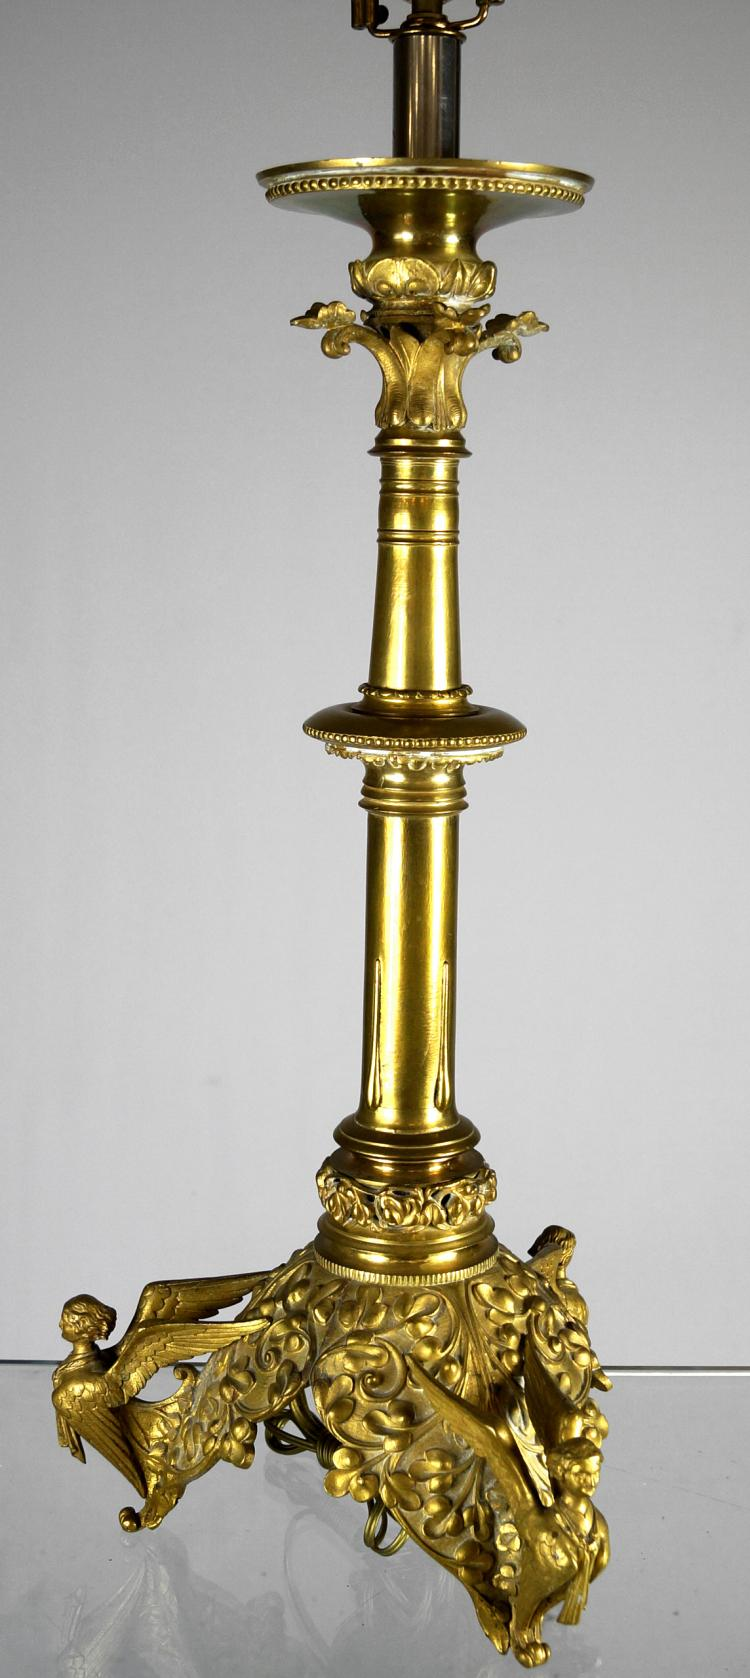 VICTORIAN BRASS CANDLESTICK/TABLE LAMP. HEIGHT 39